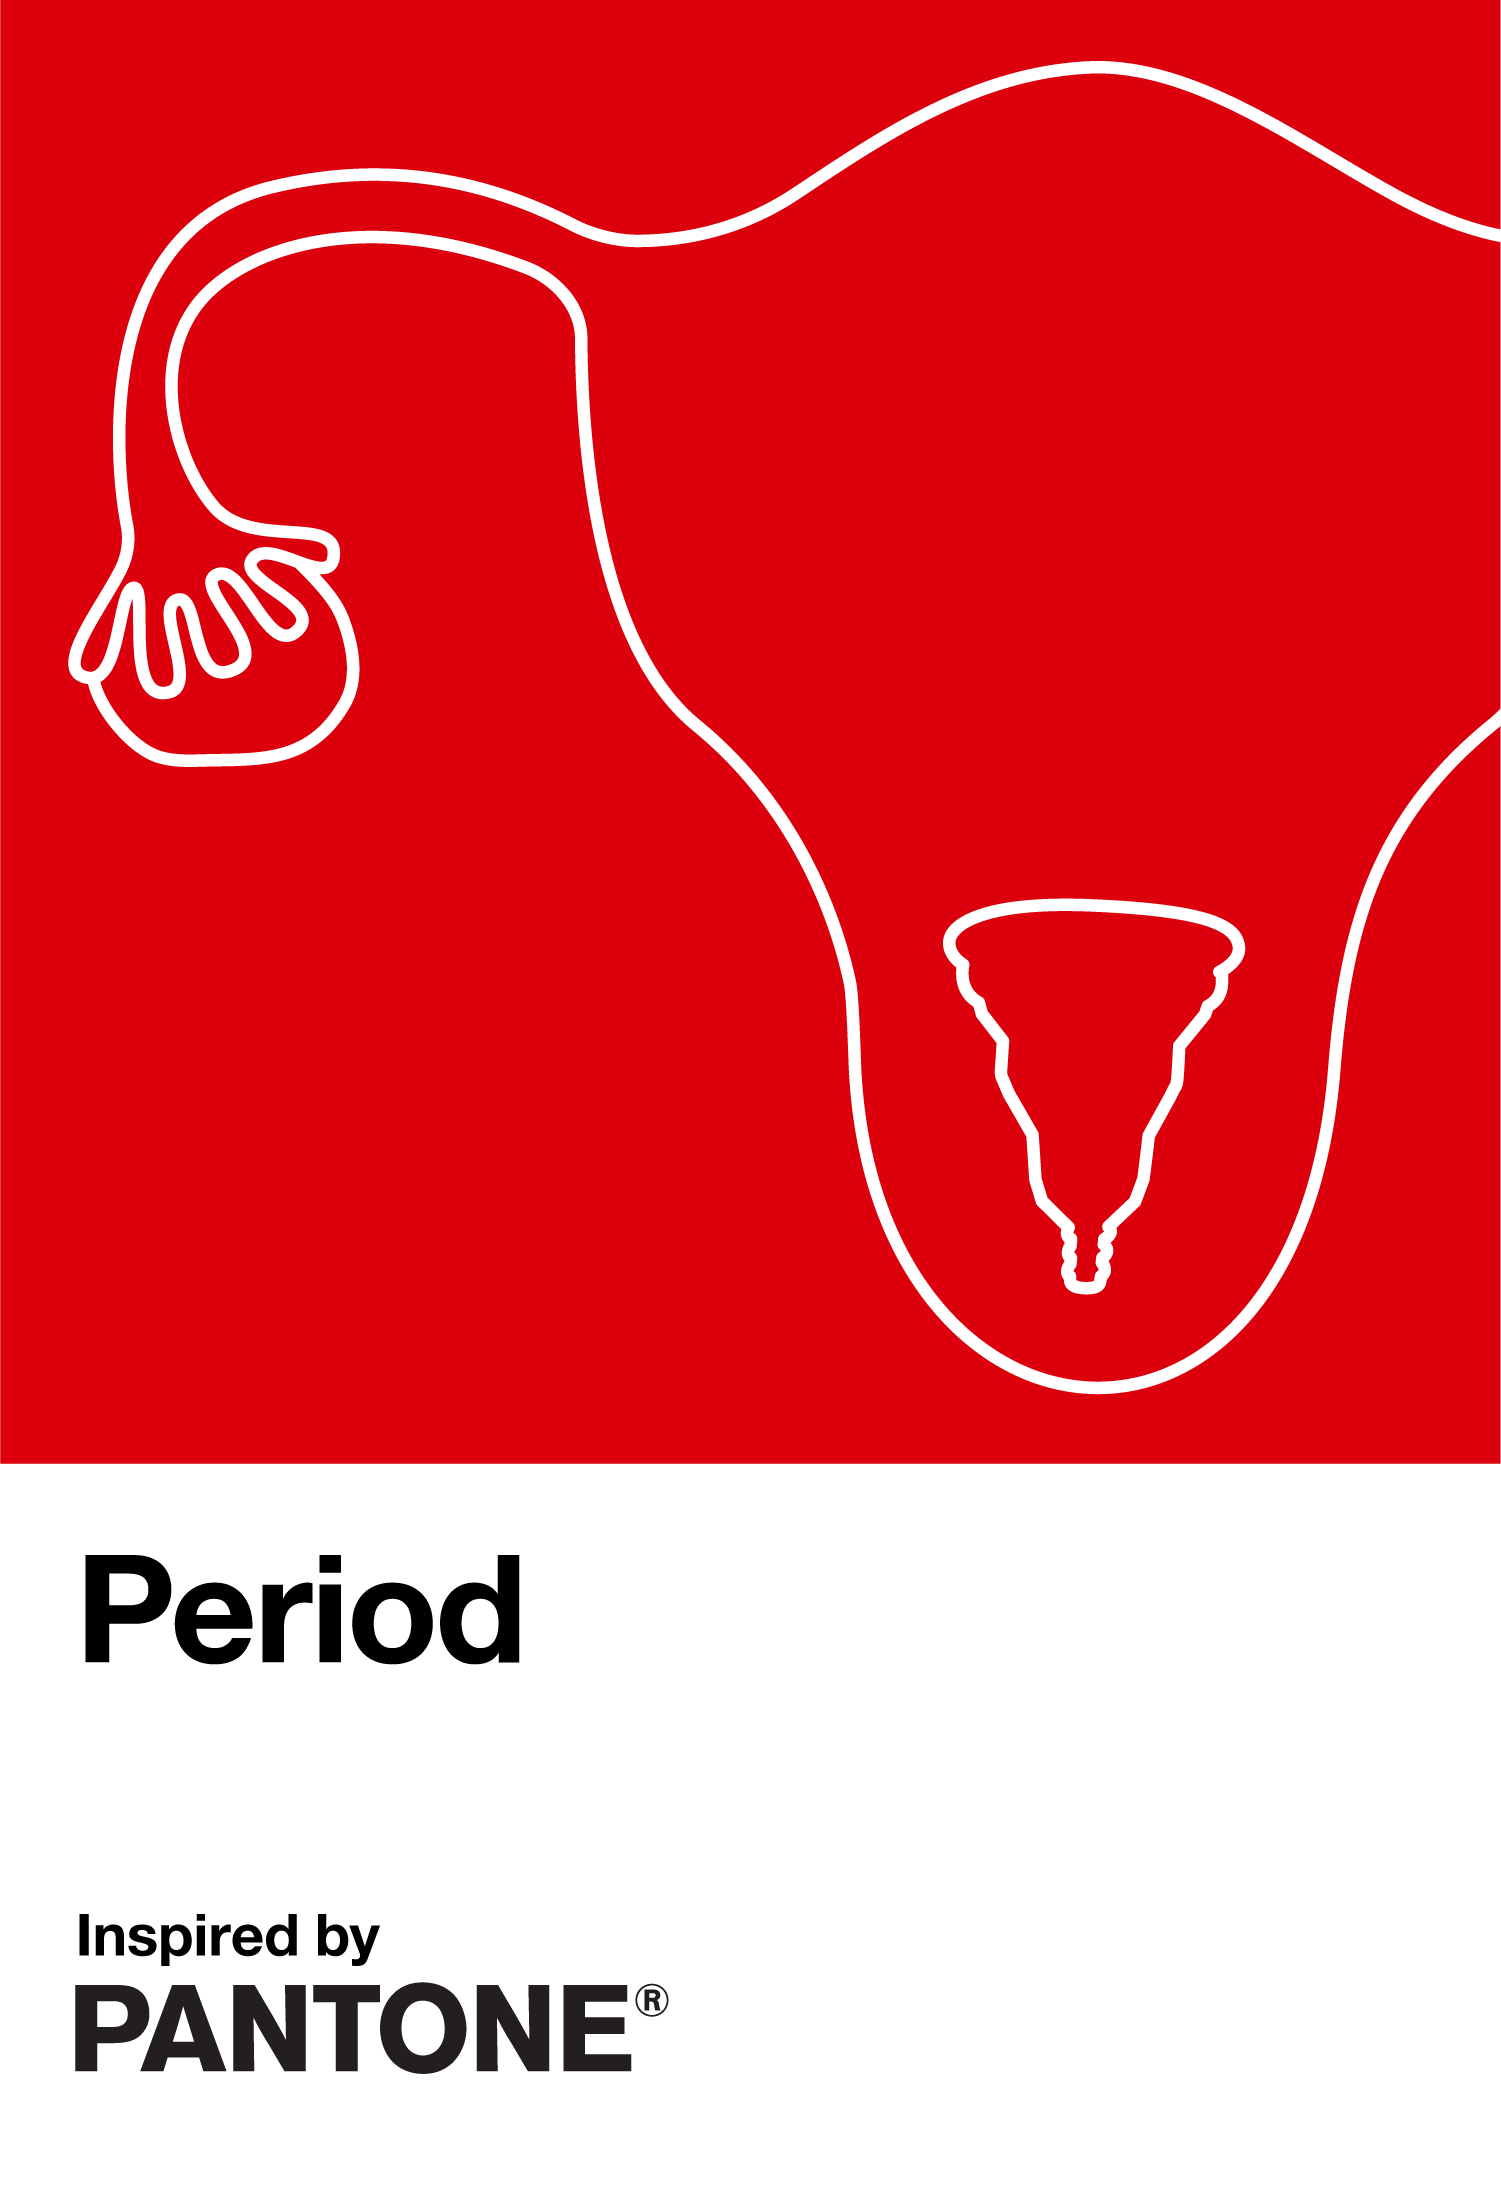 Period by Pantone